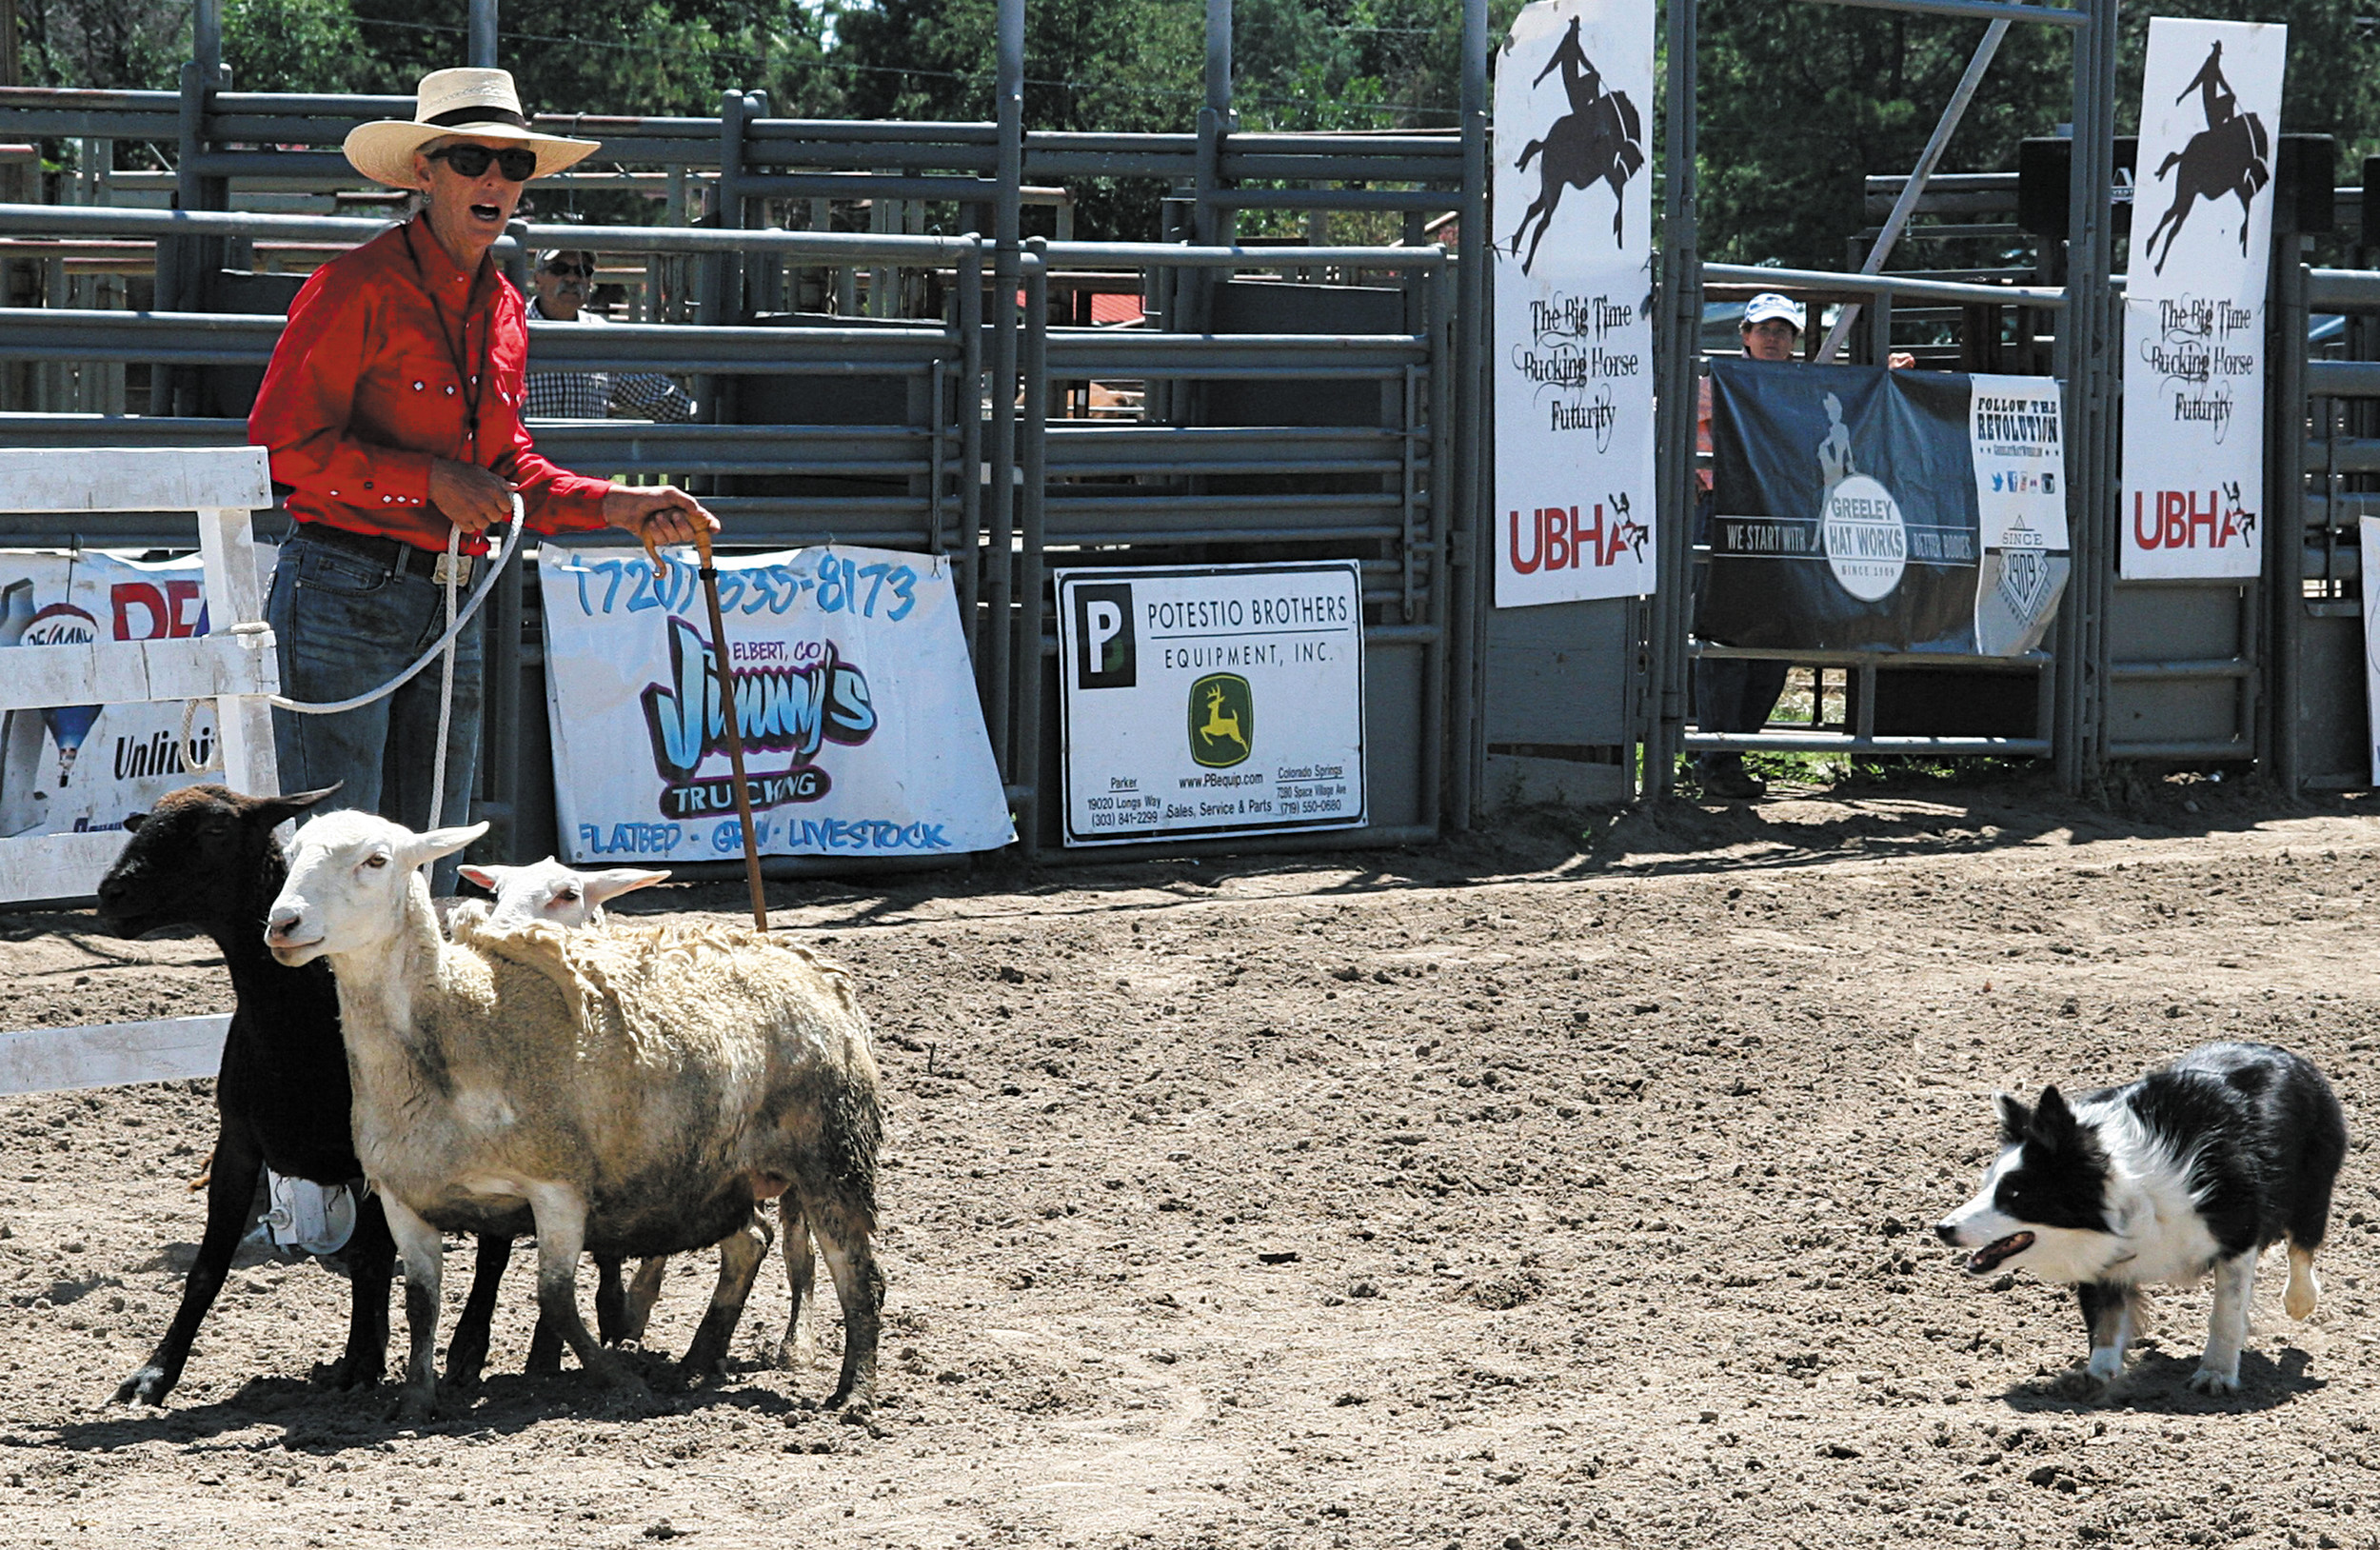 Mindy Bower and her dog Possum compete in the Open Stock Dog Trials at the Elbert County Fair on Aug. 2.